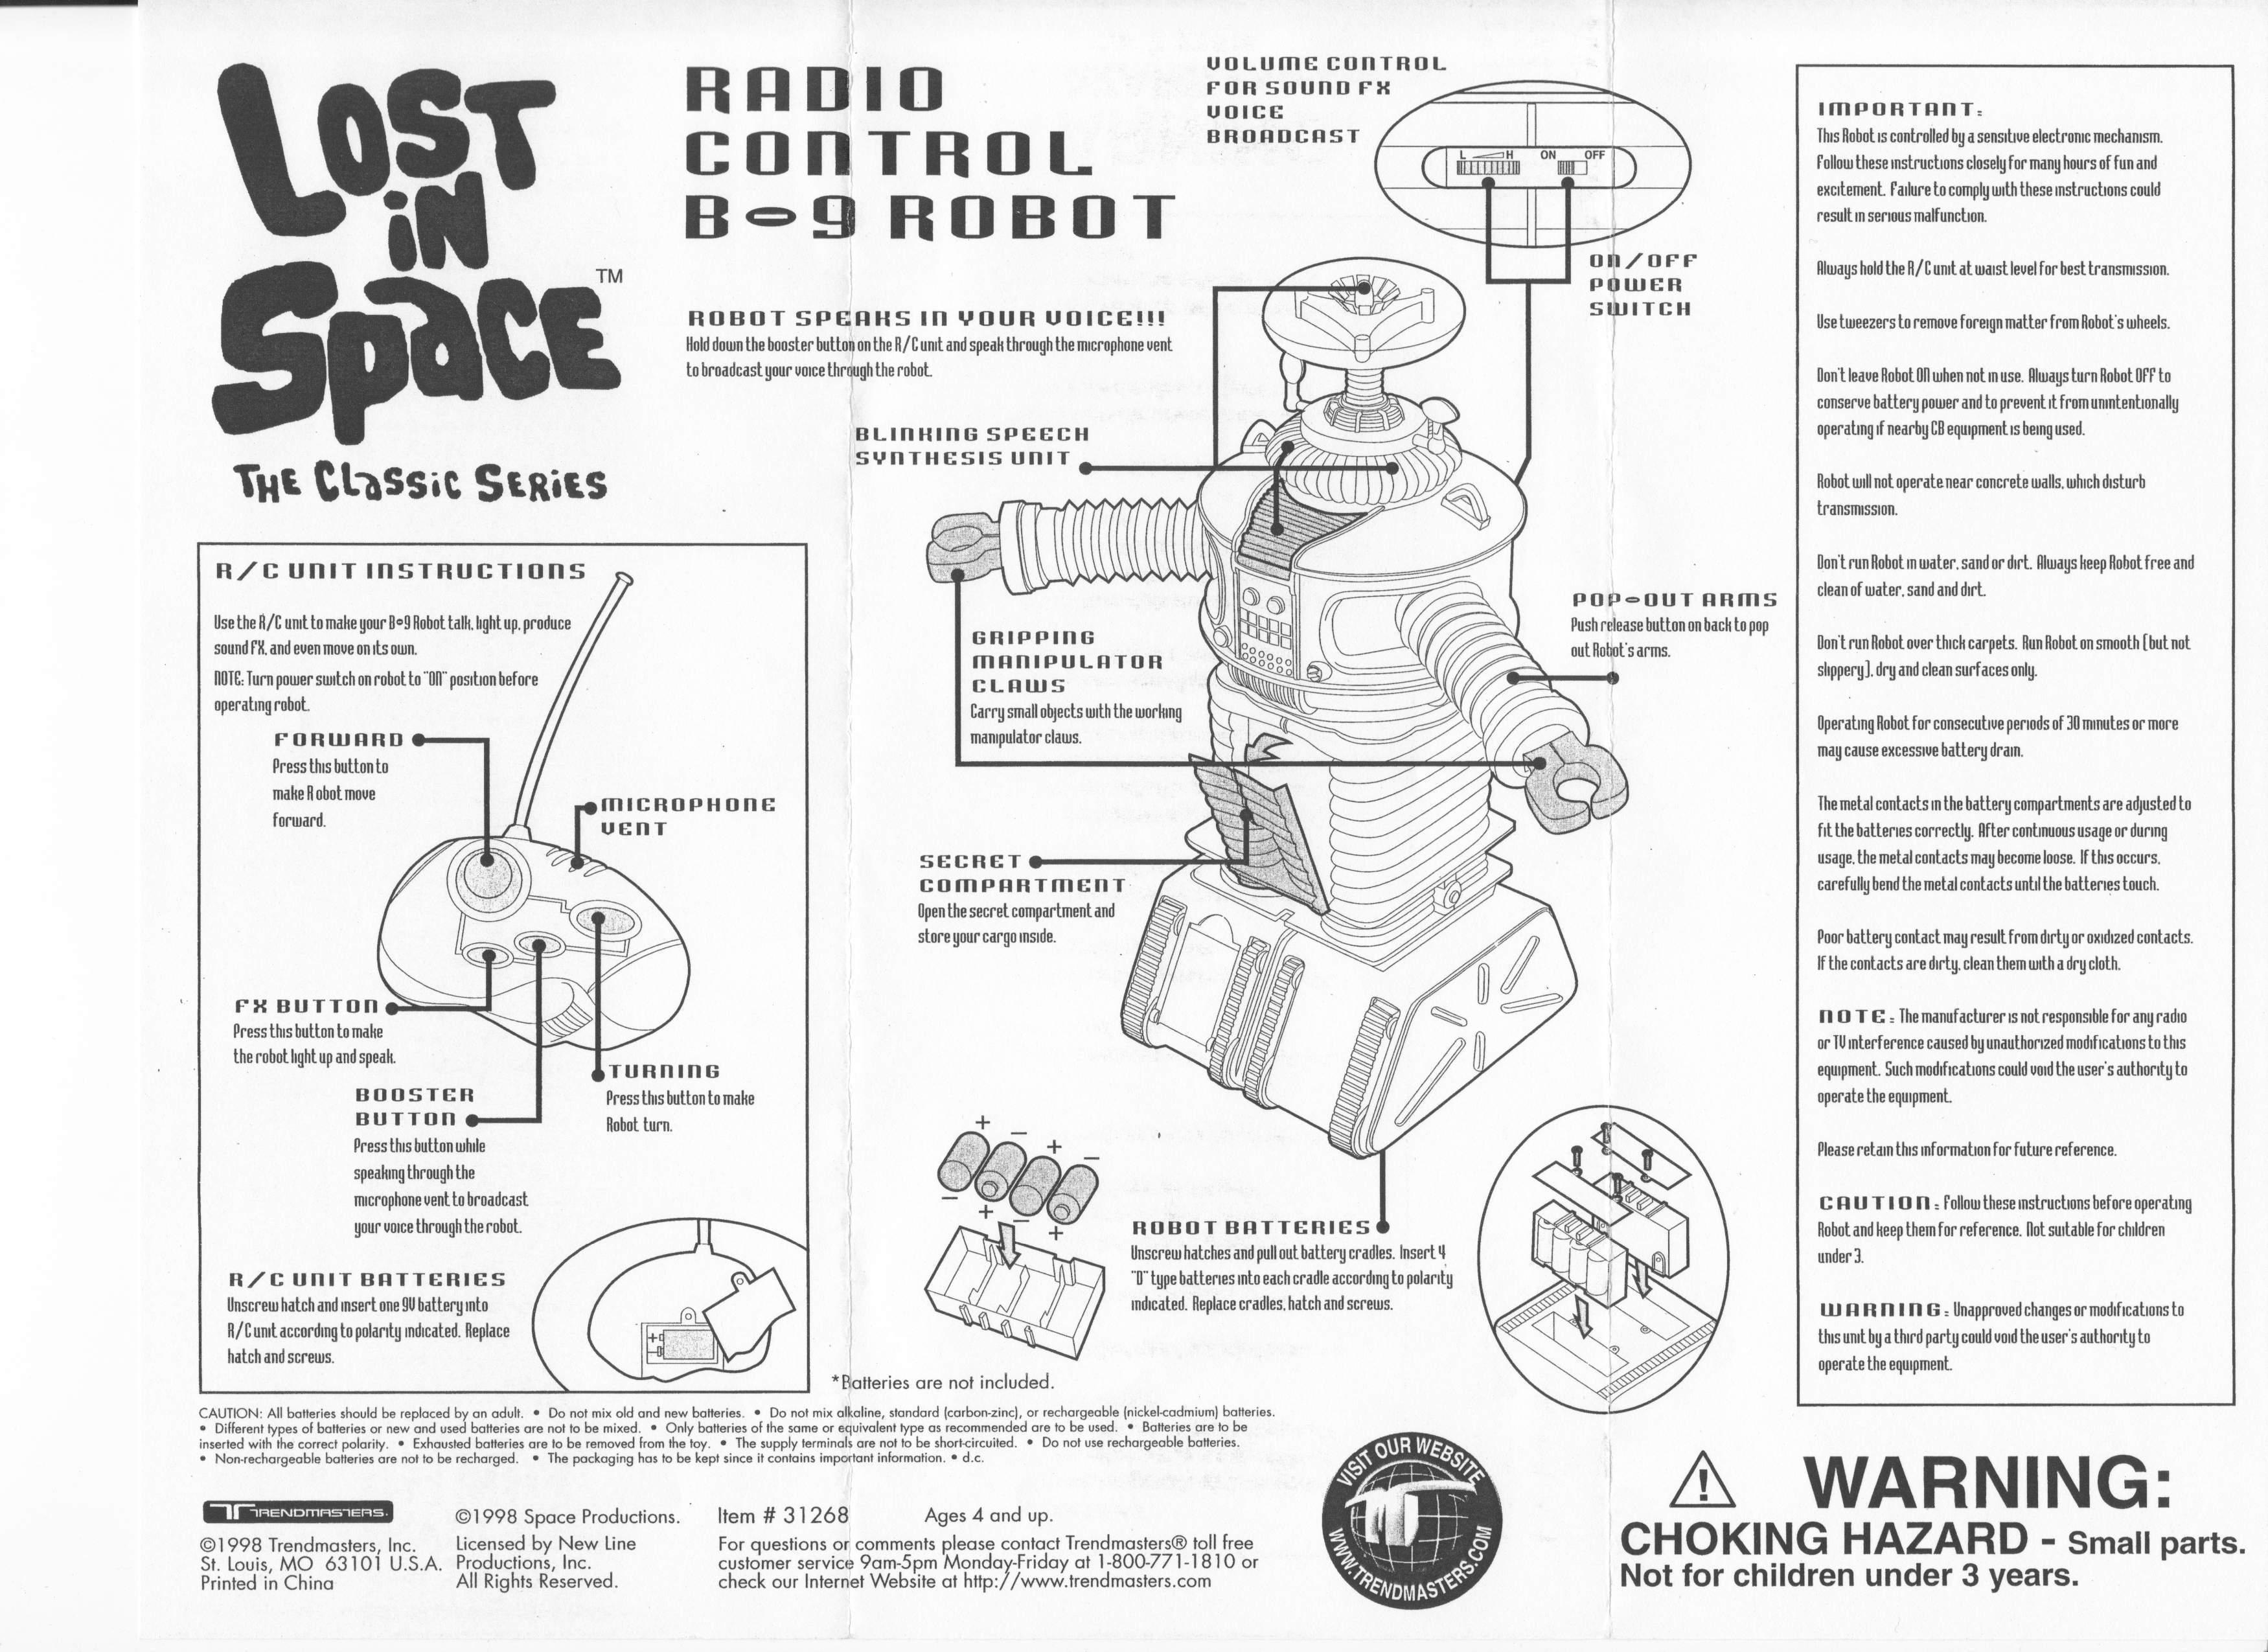 B9 Lost in Space Robot - The Old Robot's Web Site